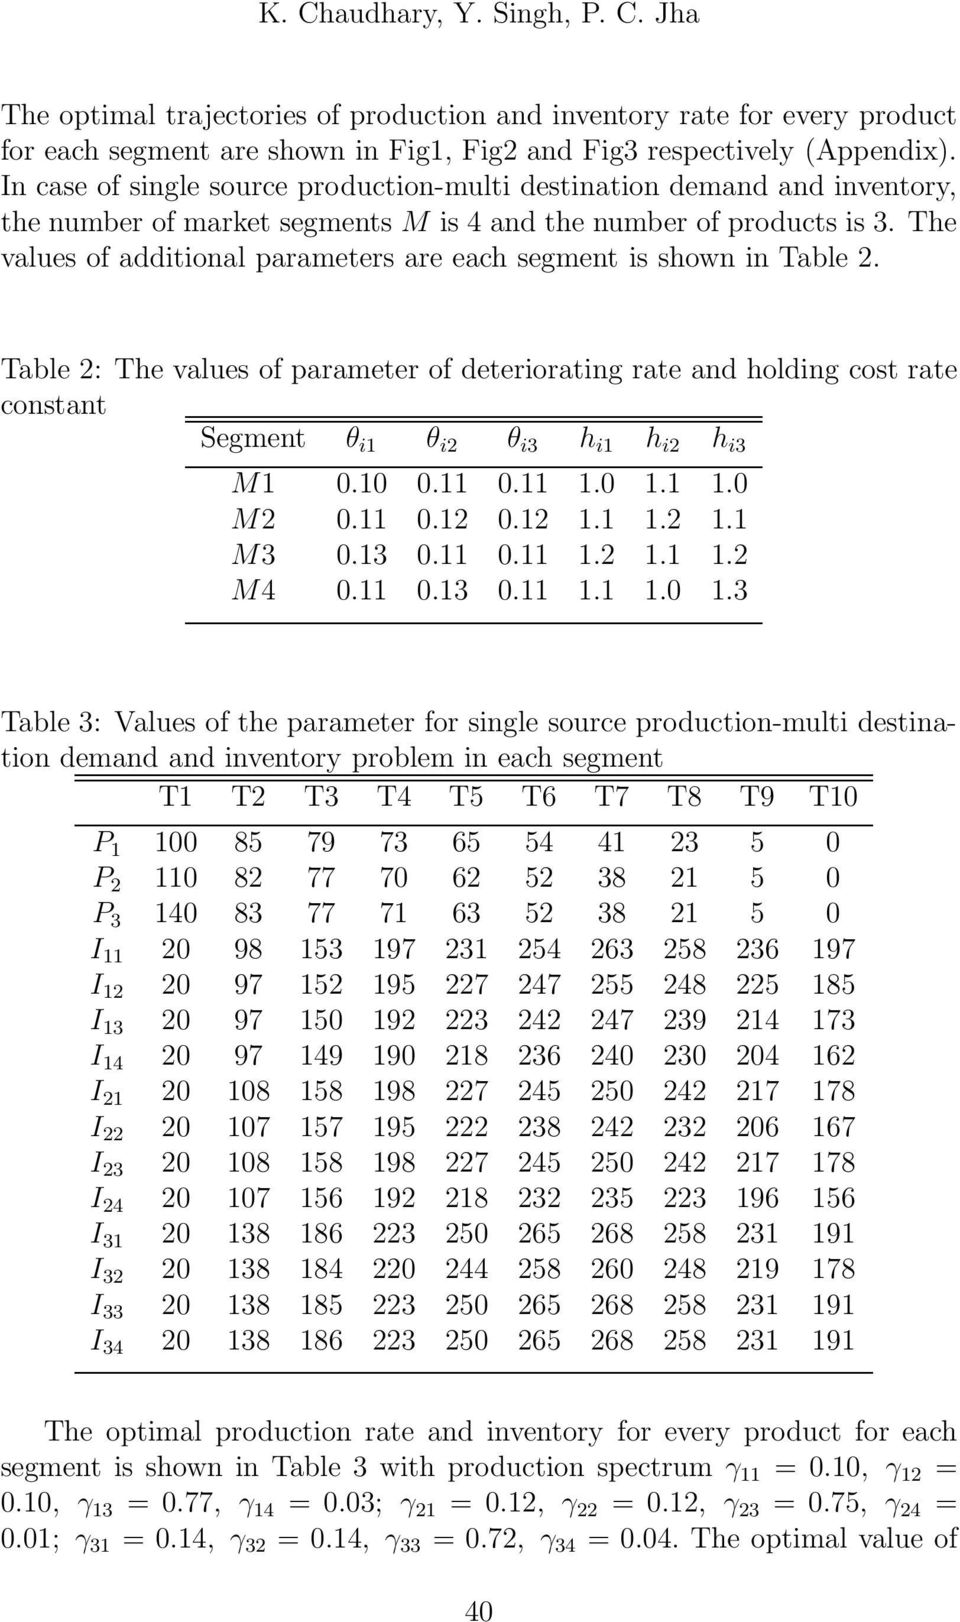 The values of aitional parameters are each segment is shown in Table 2. Table 2: The values of parameter of eteriorating rate an holing cost rate constant Segment θ i1 θ i2 θ i3 h i1 h i2 h i3 M1 0.